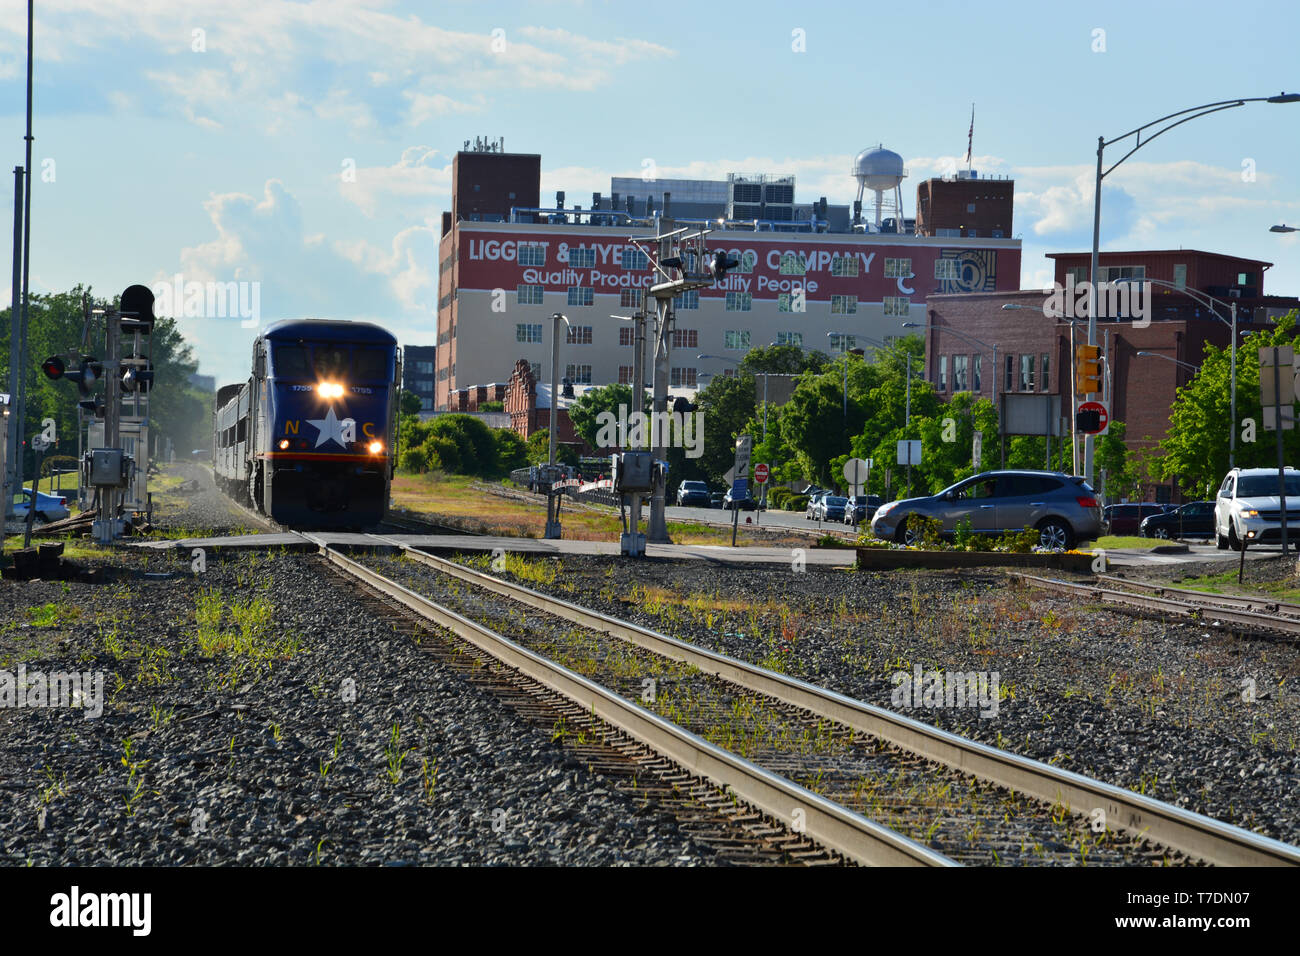 The Amtrak train Piedmont pulls out of the station in downtown Durham North Carolina on its way to Raleigh. - Stock Image